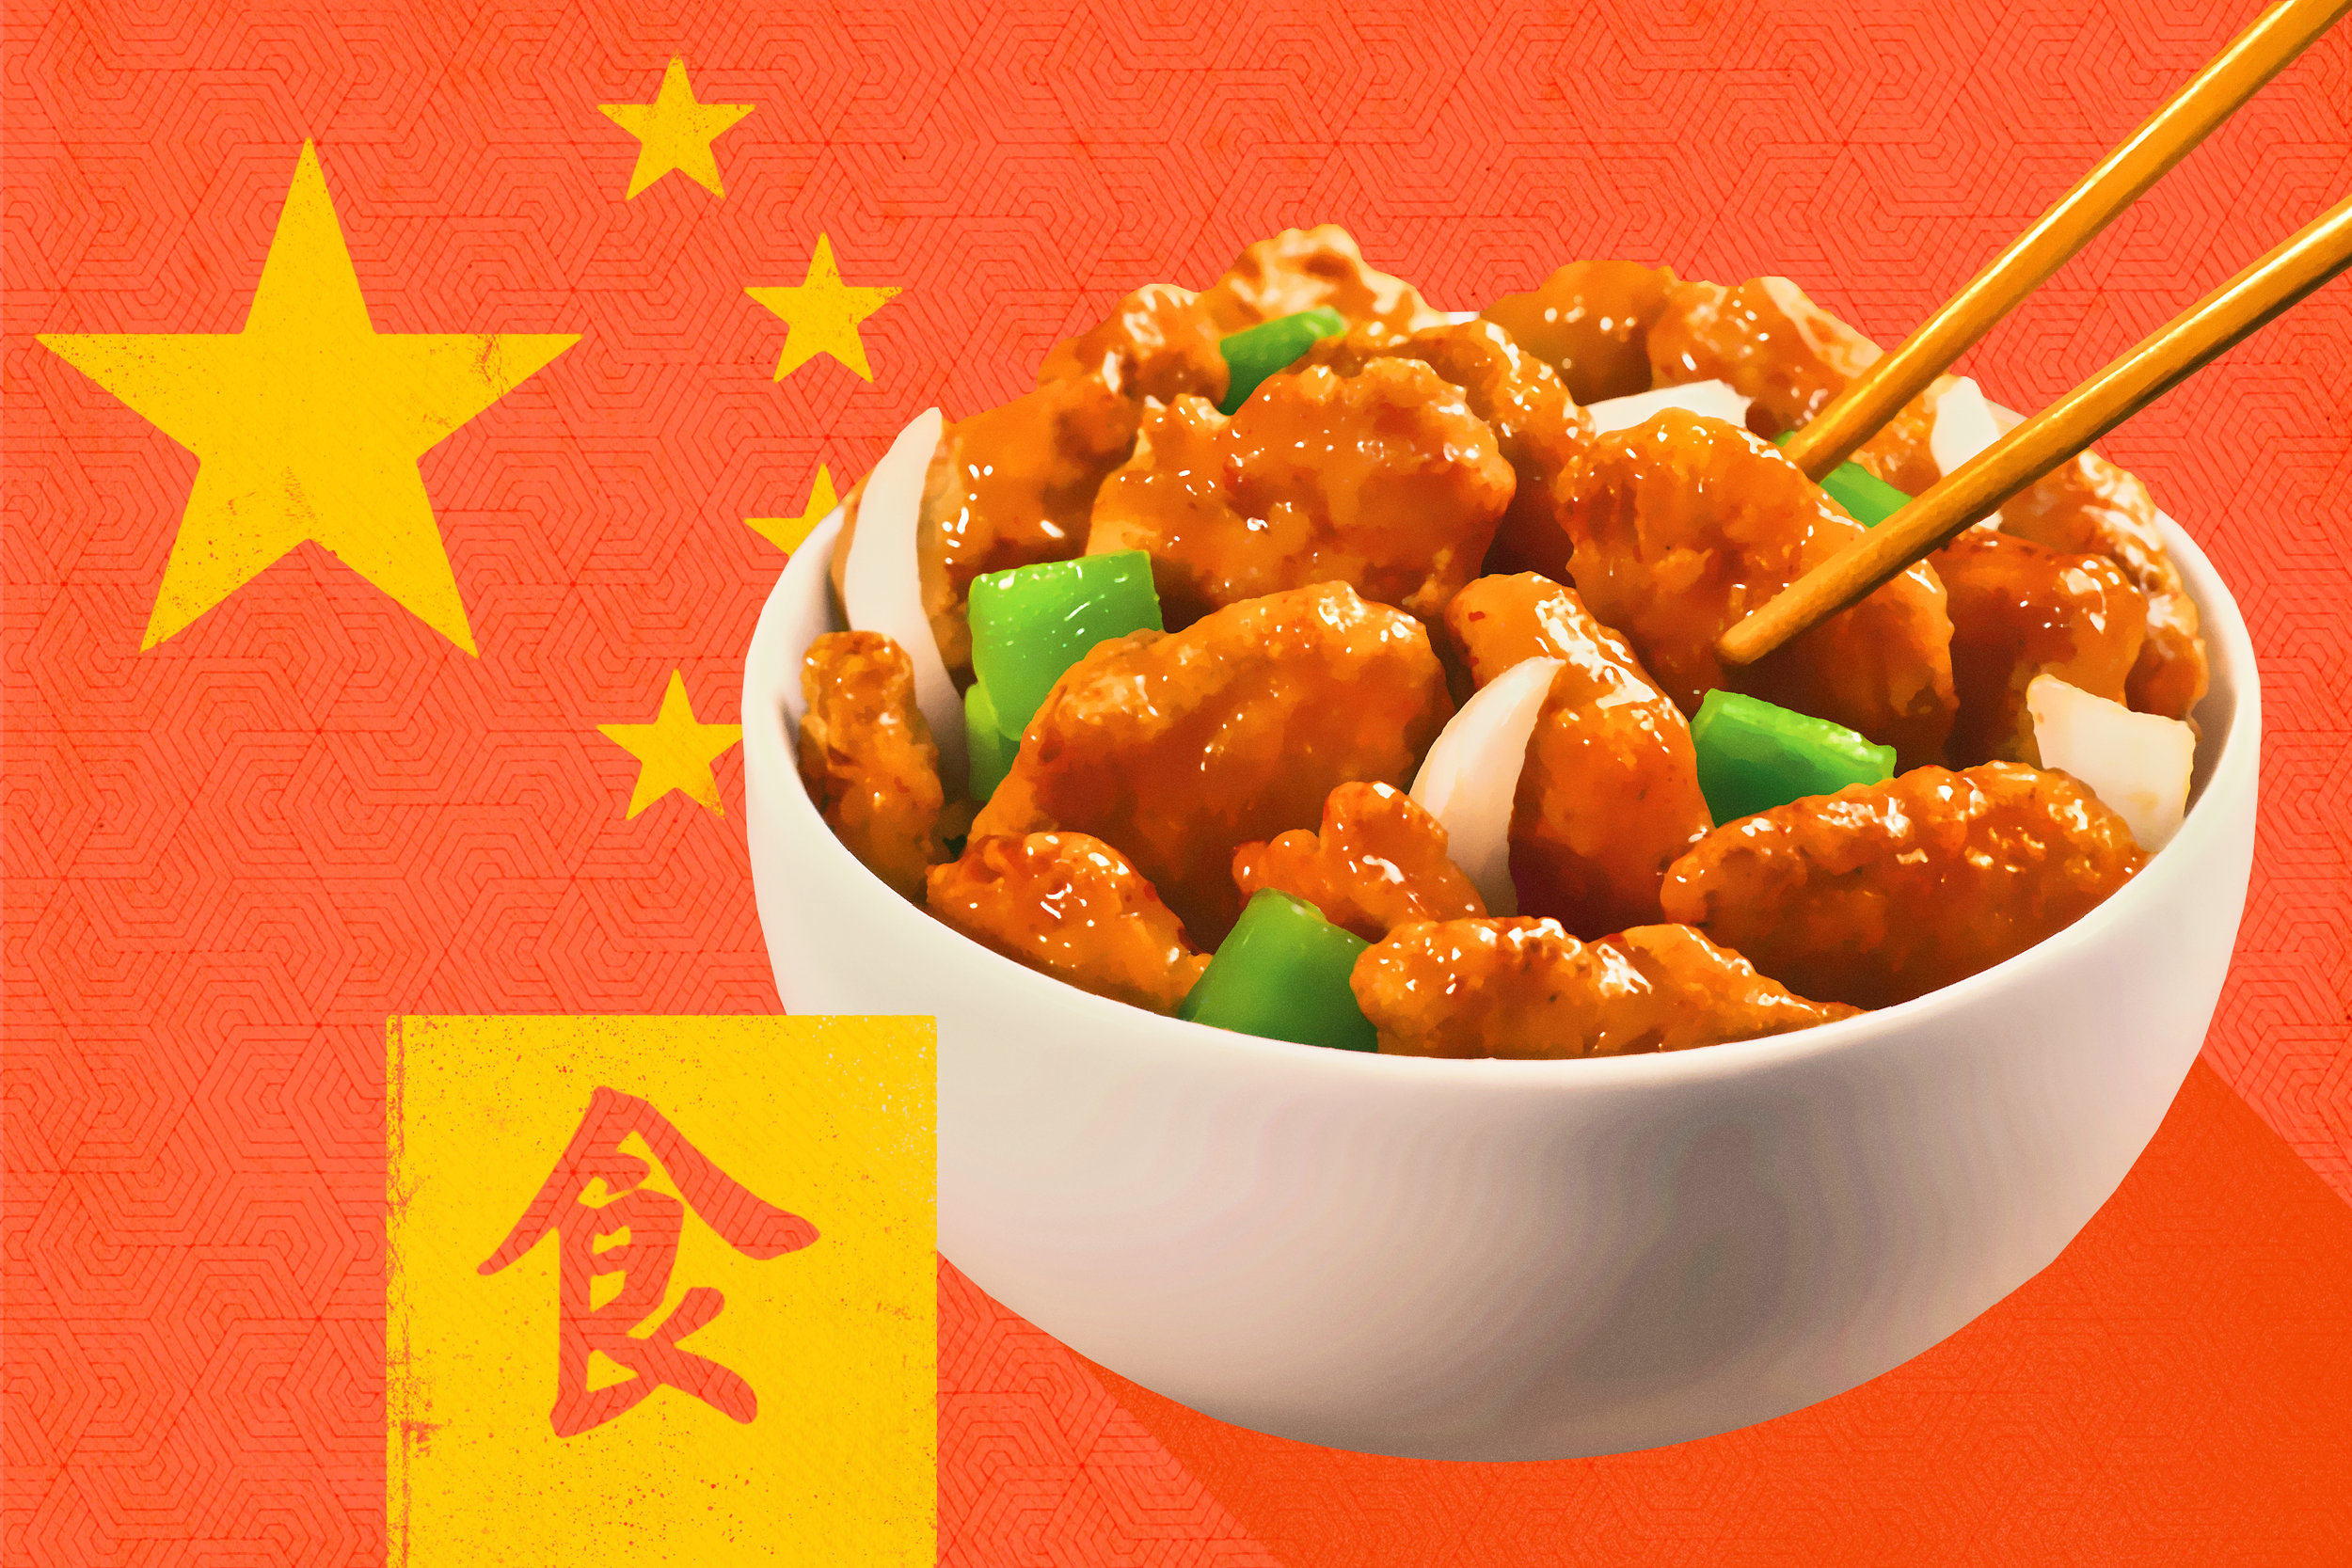 How-Panda-Express-Changed-Chinese-Food-in-America-Main.jpg